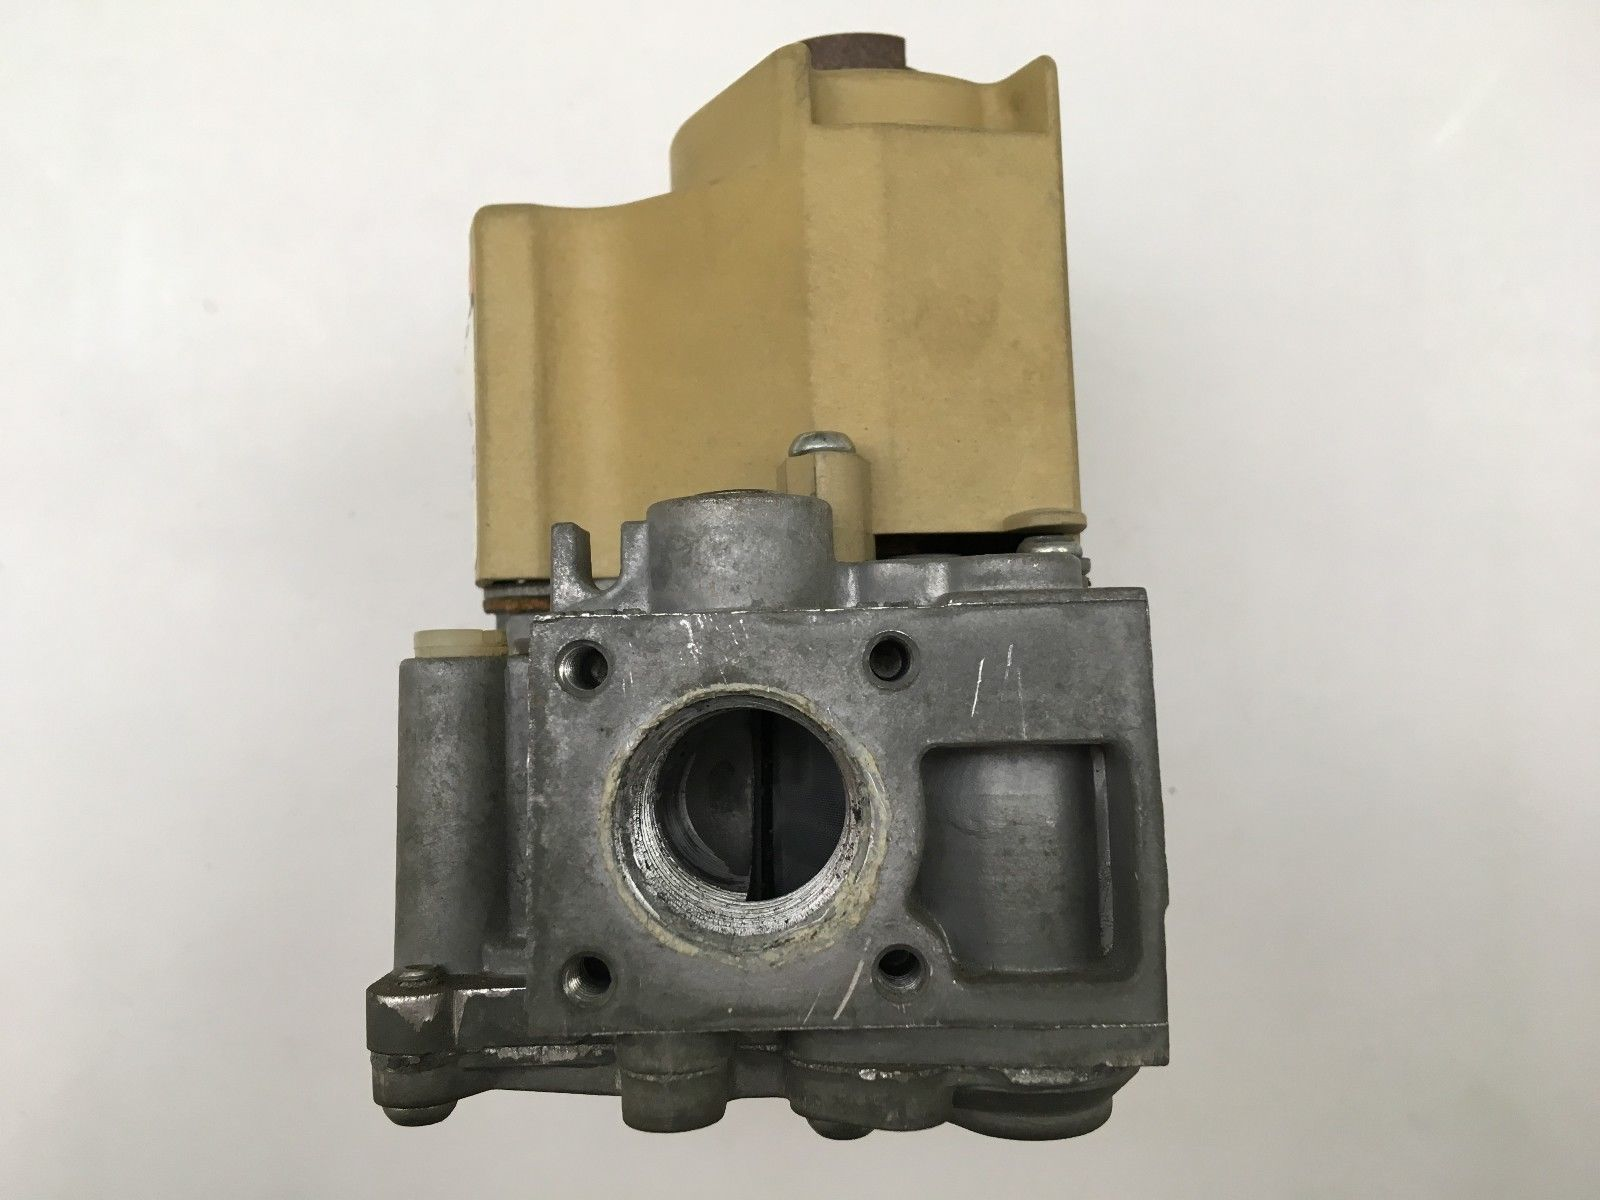 077b087d005 HONEYWELL VR8205M 2401 Furnace Gas Valve used + FREE USPS Priority mail  shipping